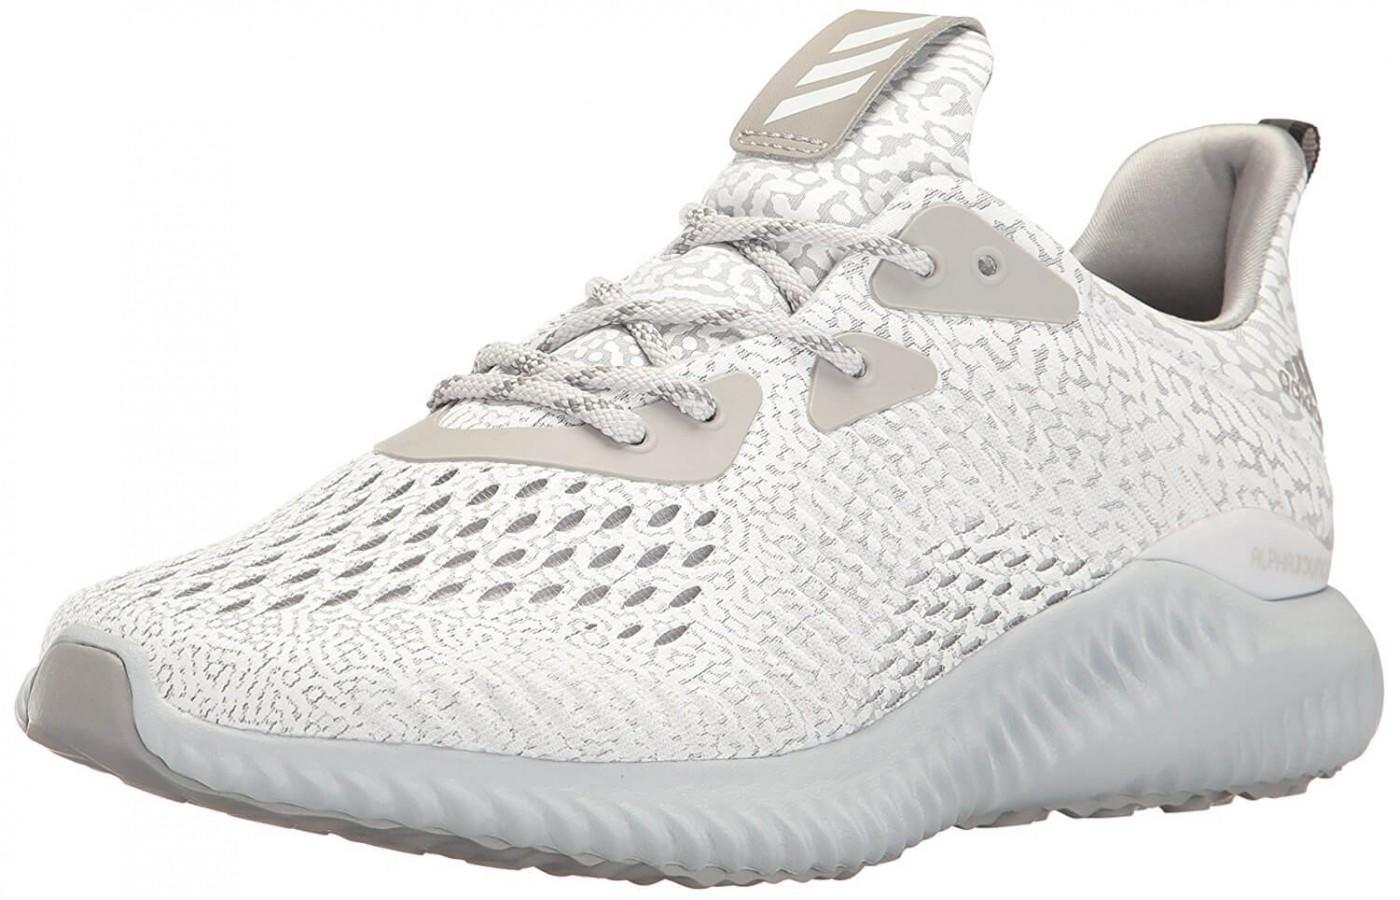 Adidas Alphabounce AMS was designed using motion capture technology